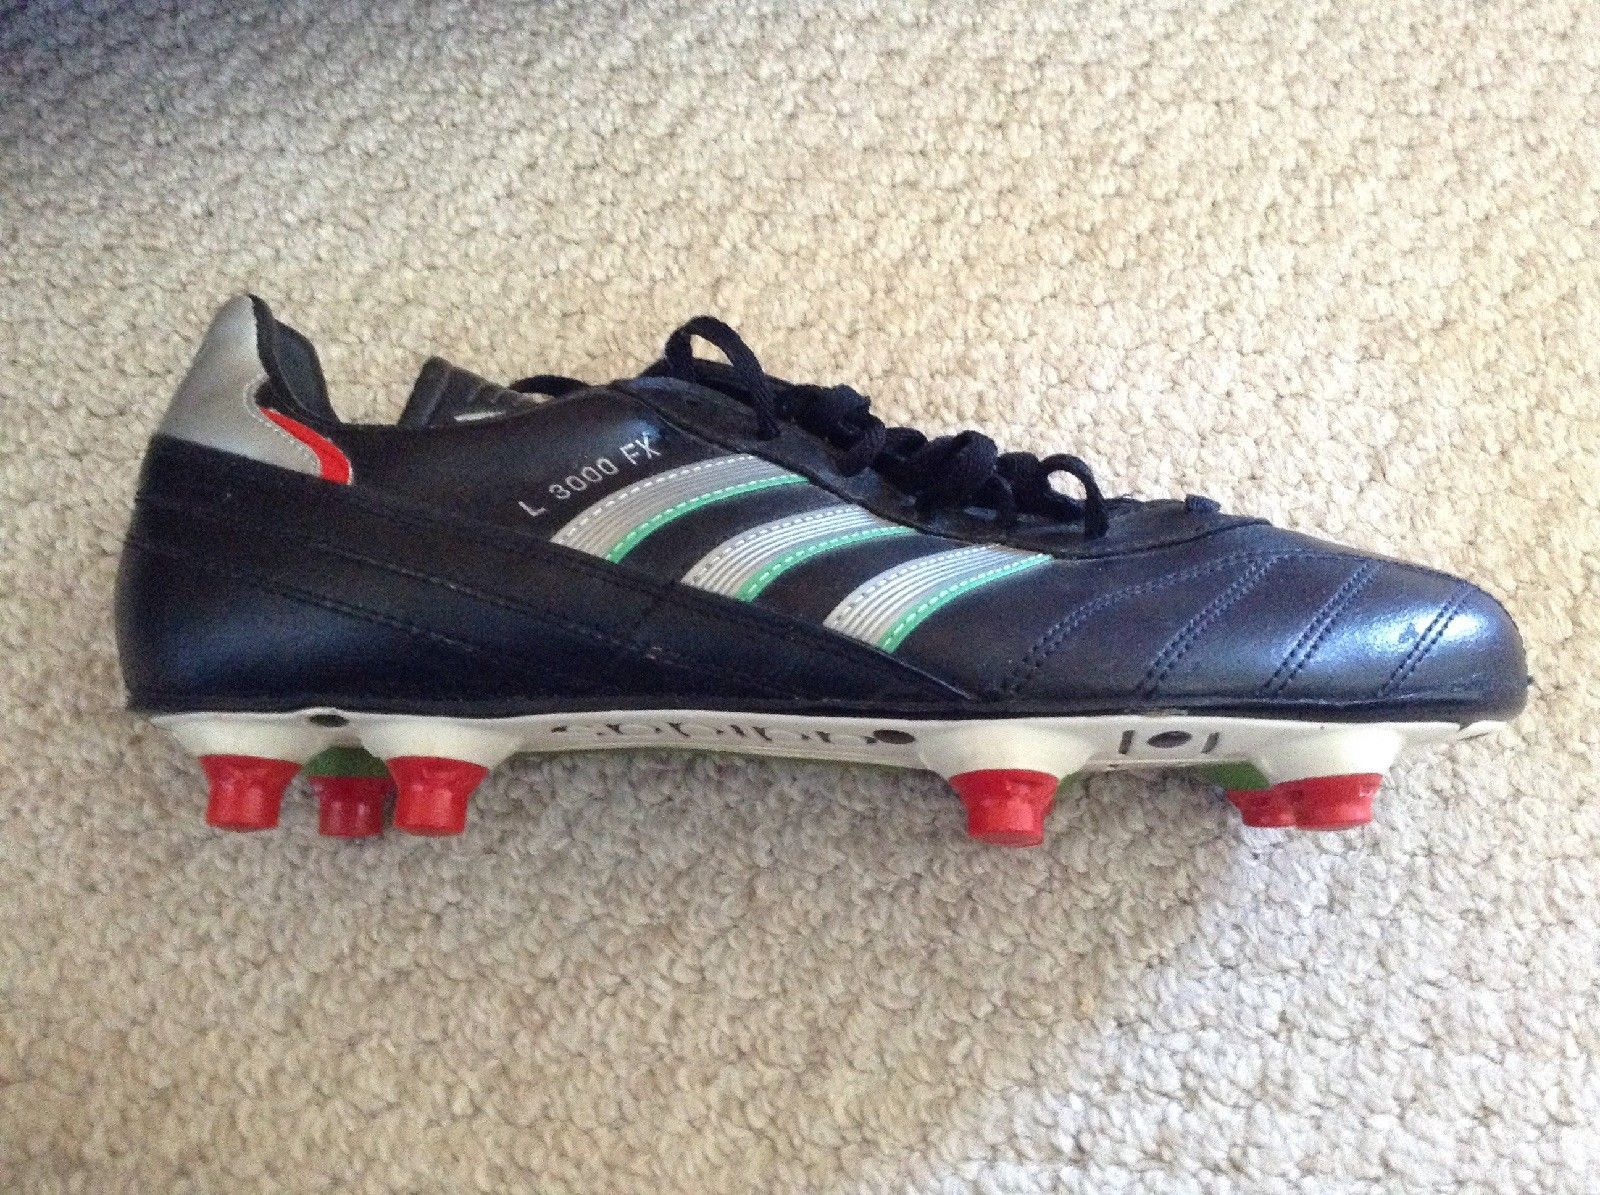 Adidas L3000 Fx Rare Vintage Football Boots 80 S World Cup Ebay